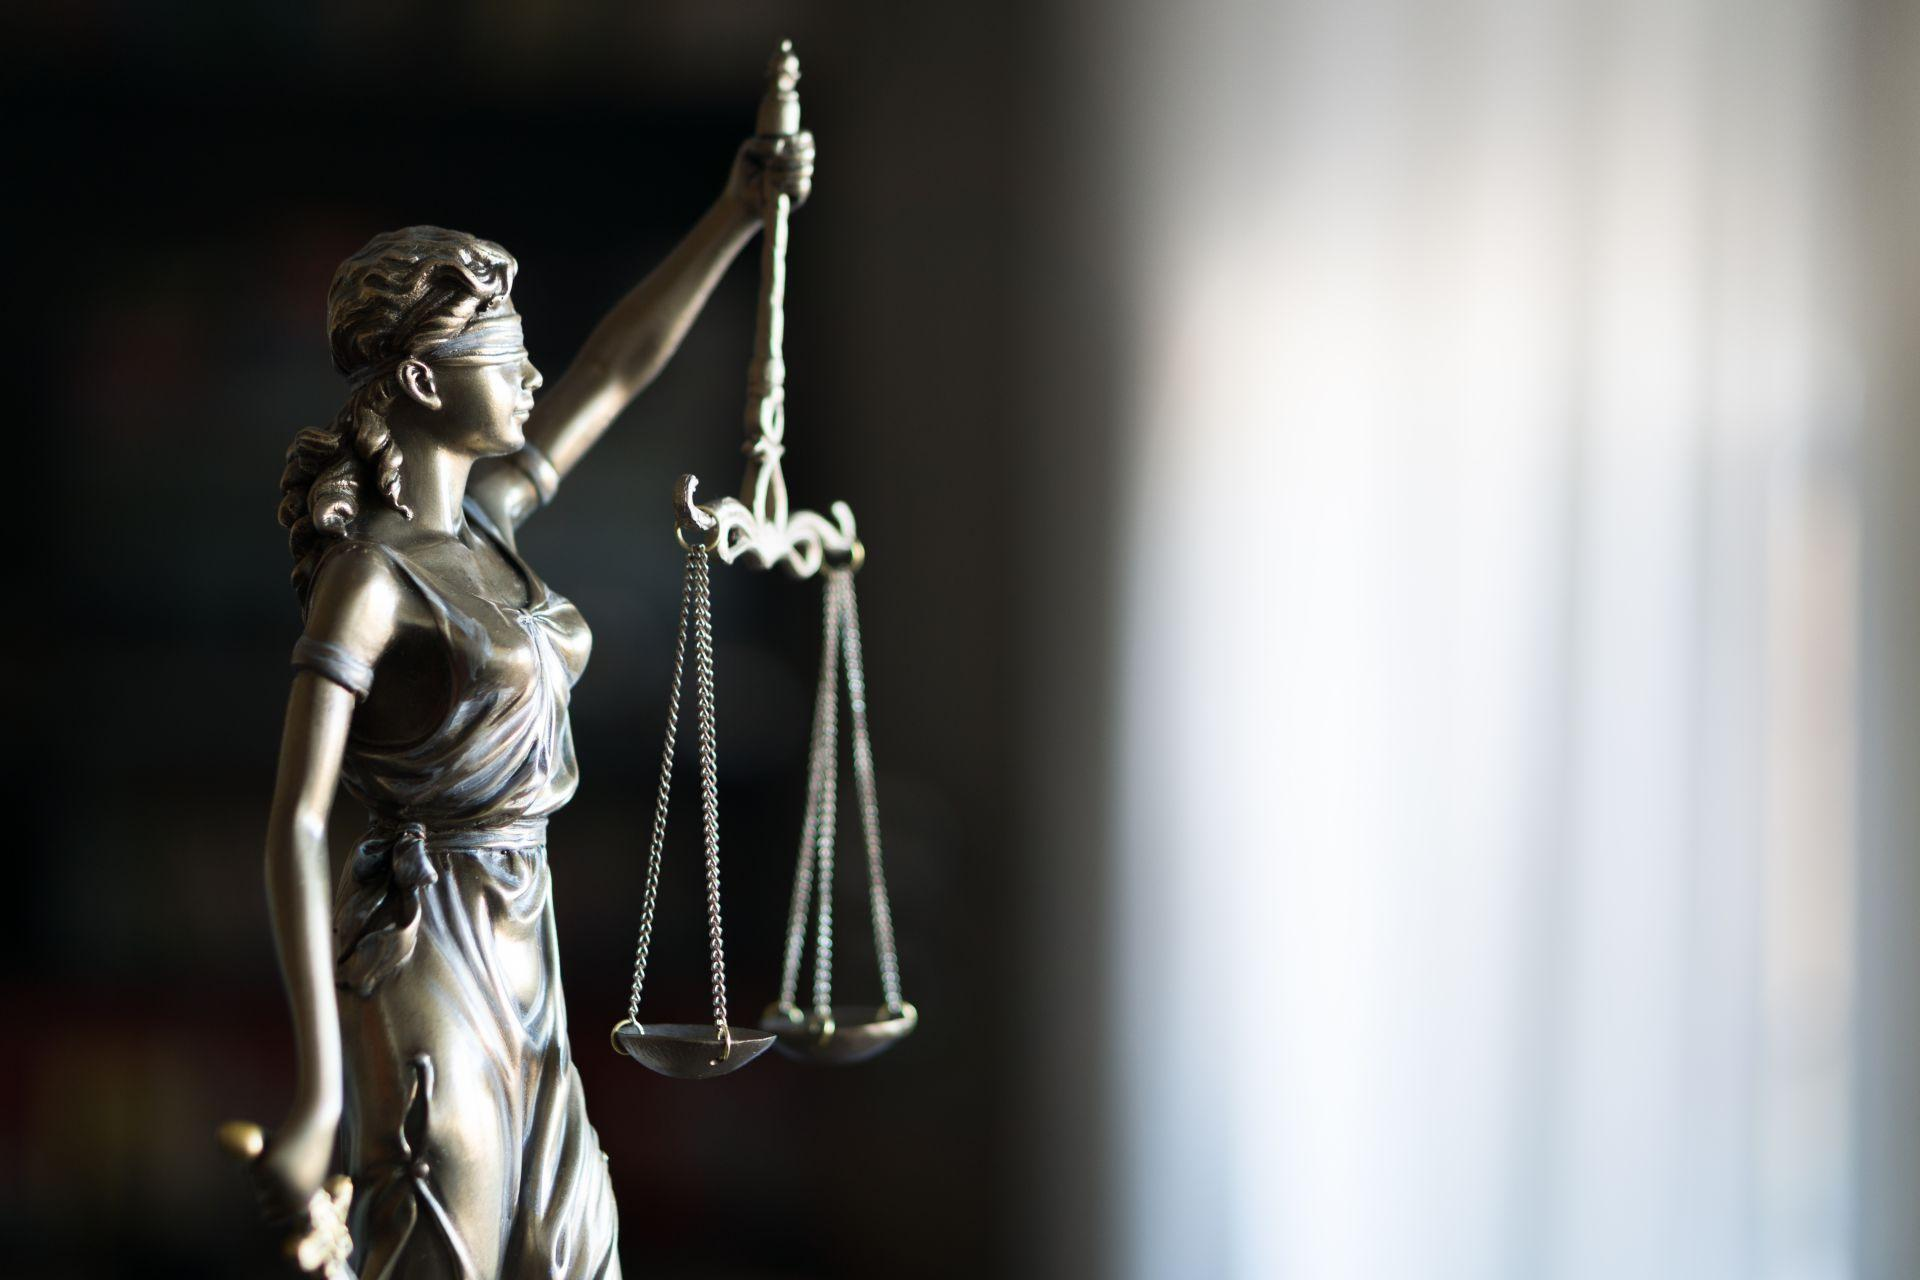 Dutch Judicial System lacks Knowledge and Manpower to Fight Cybercrime